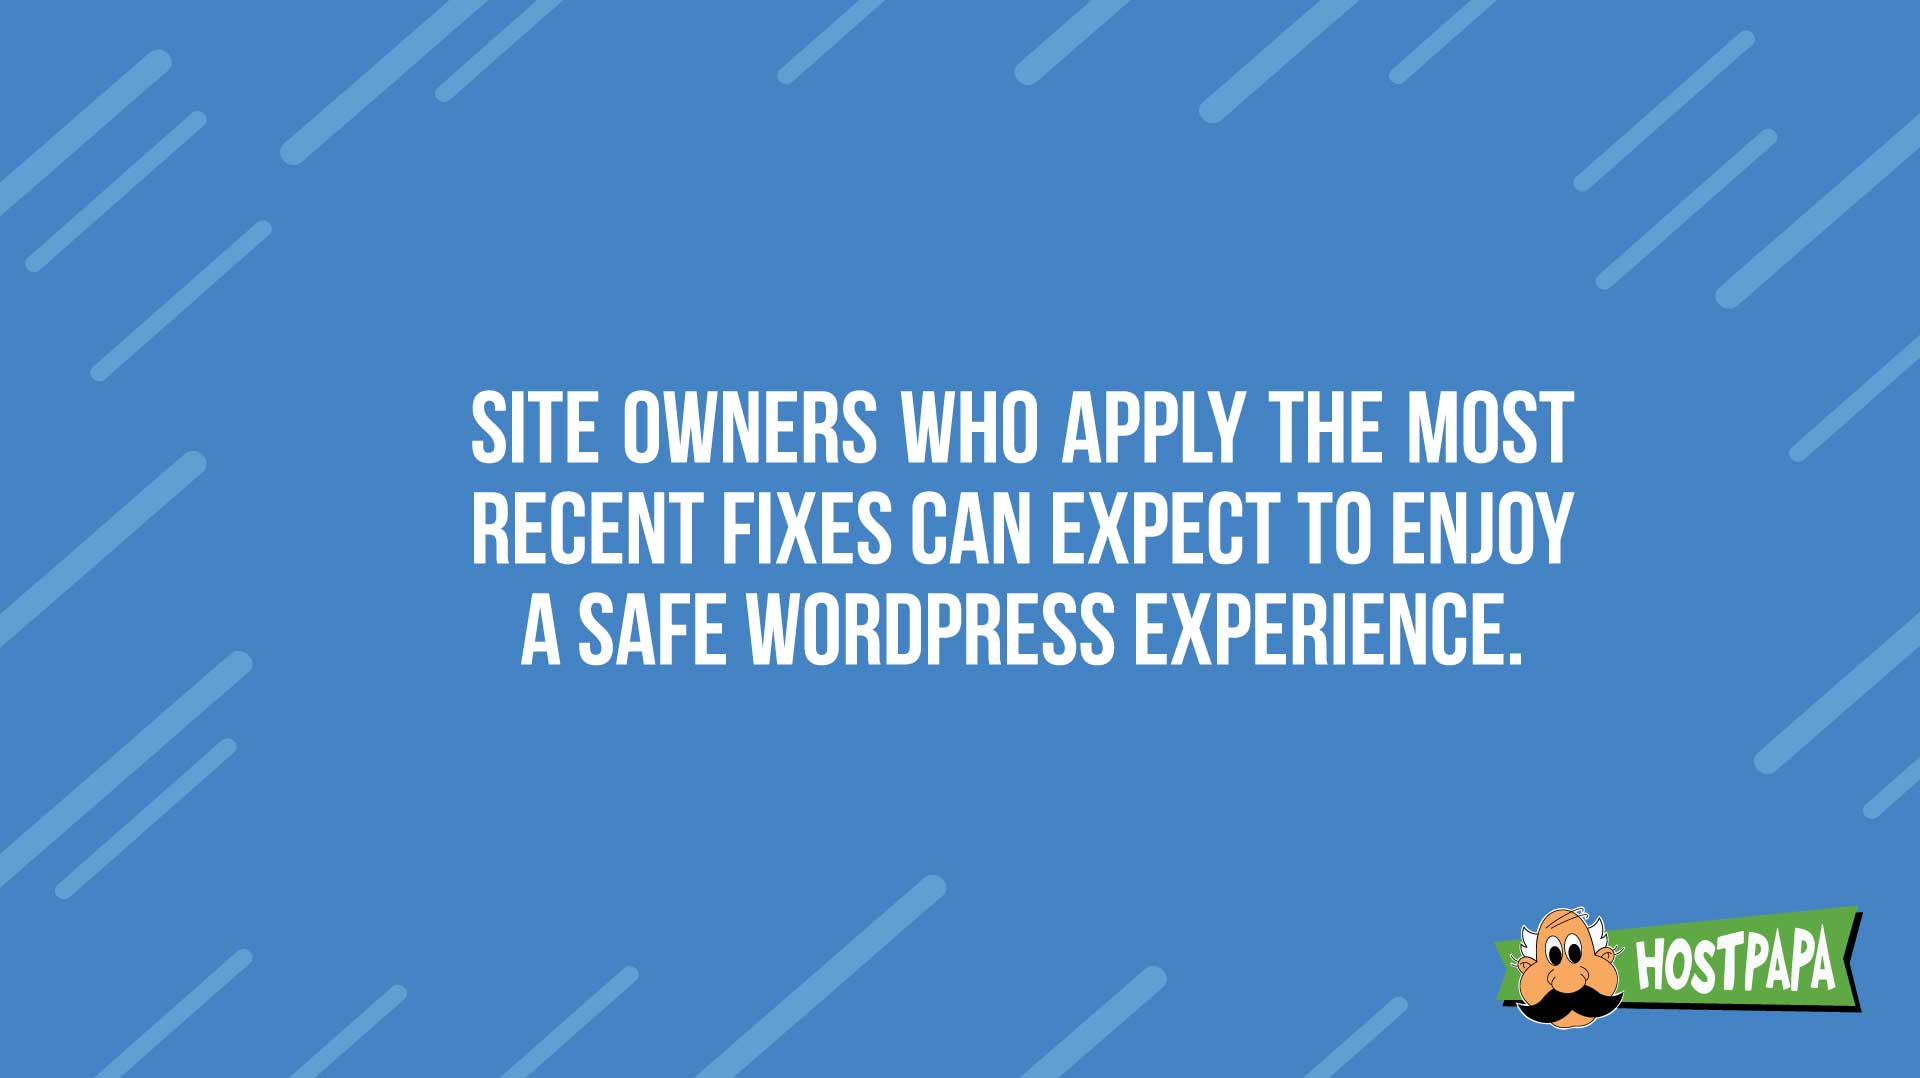 Site owners who use the most recent fixes enjoy a safe WordPress experience